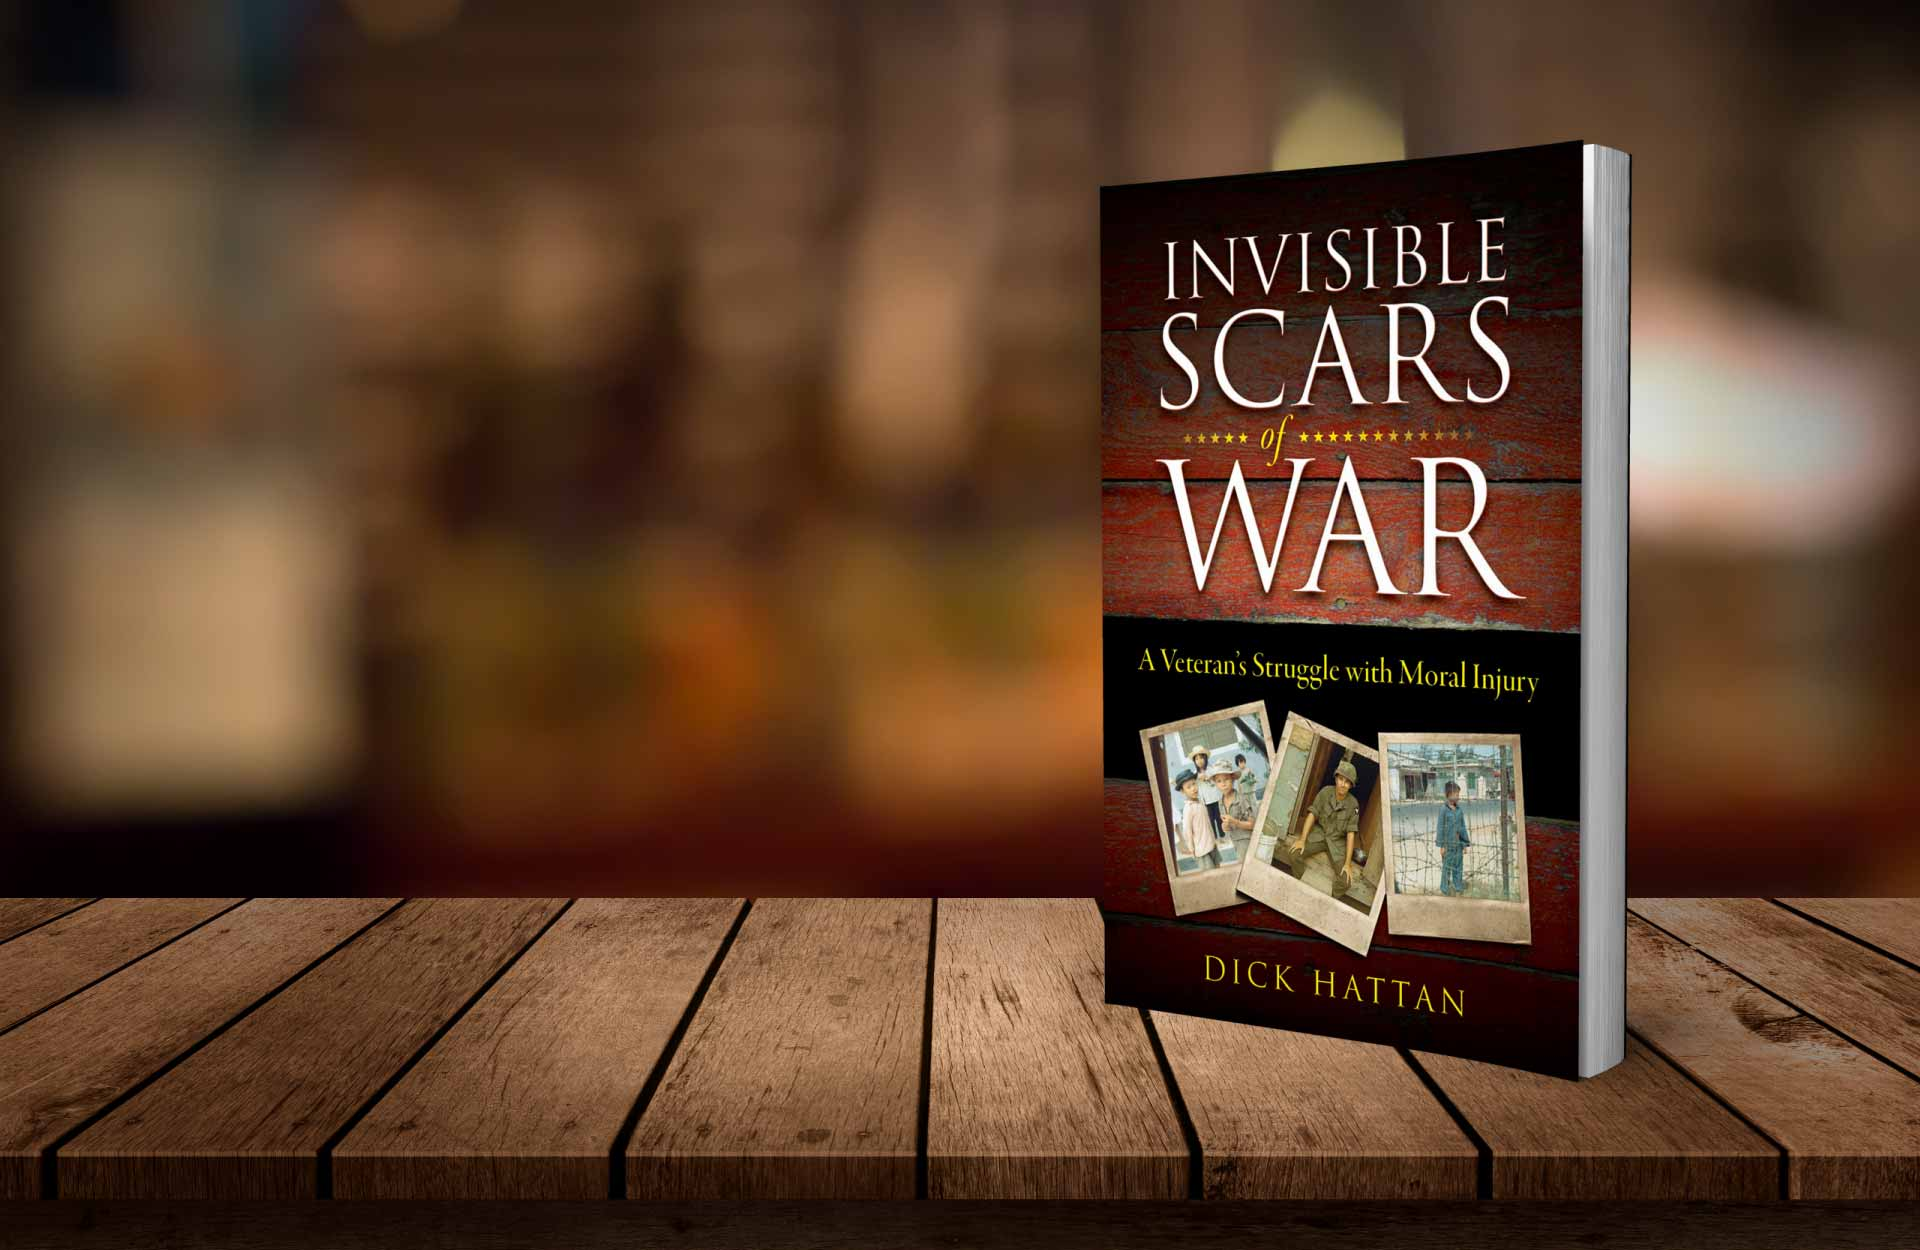 Invisible Scars of War by Dick Hattan